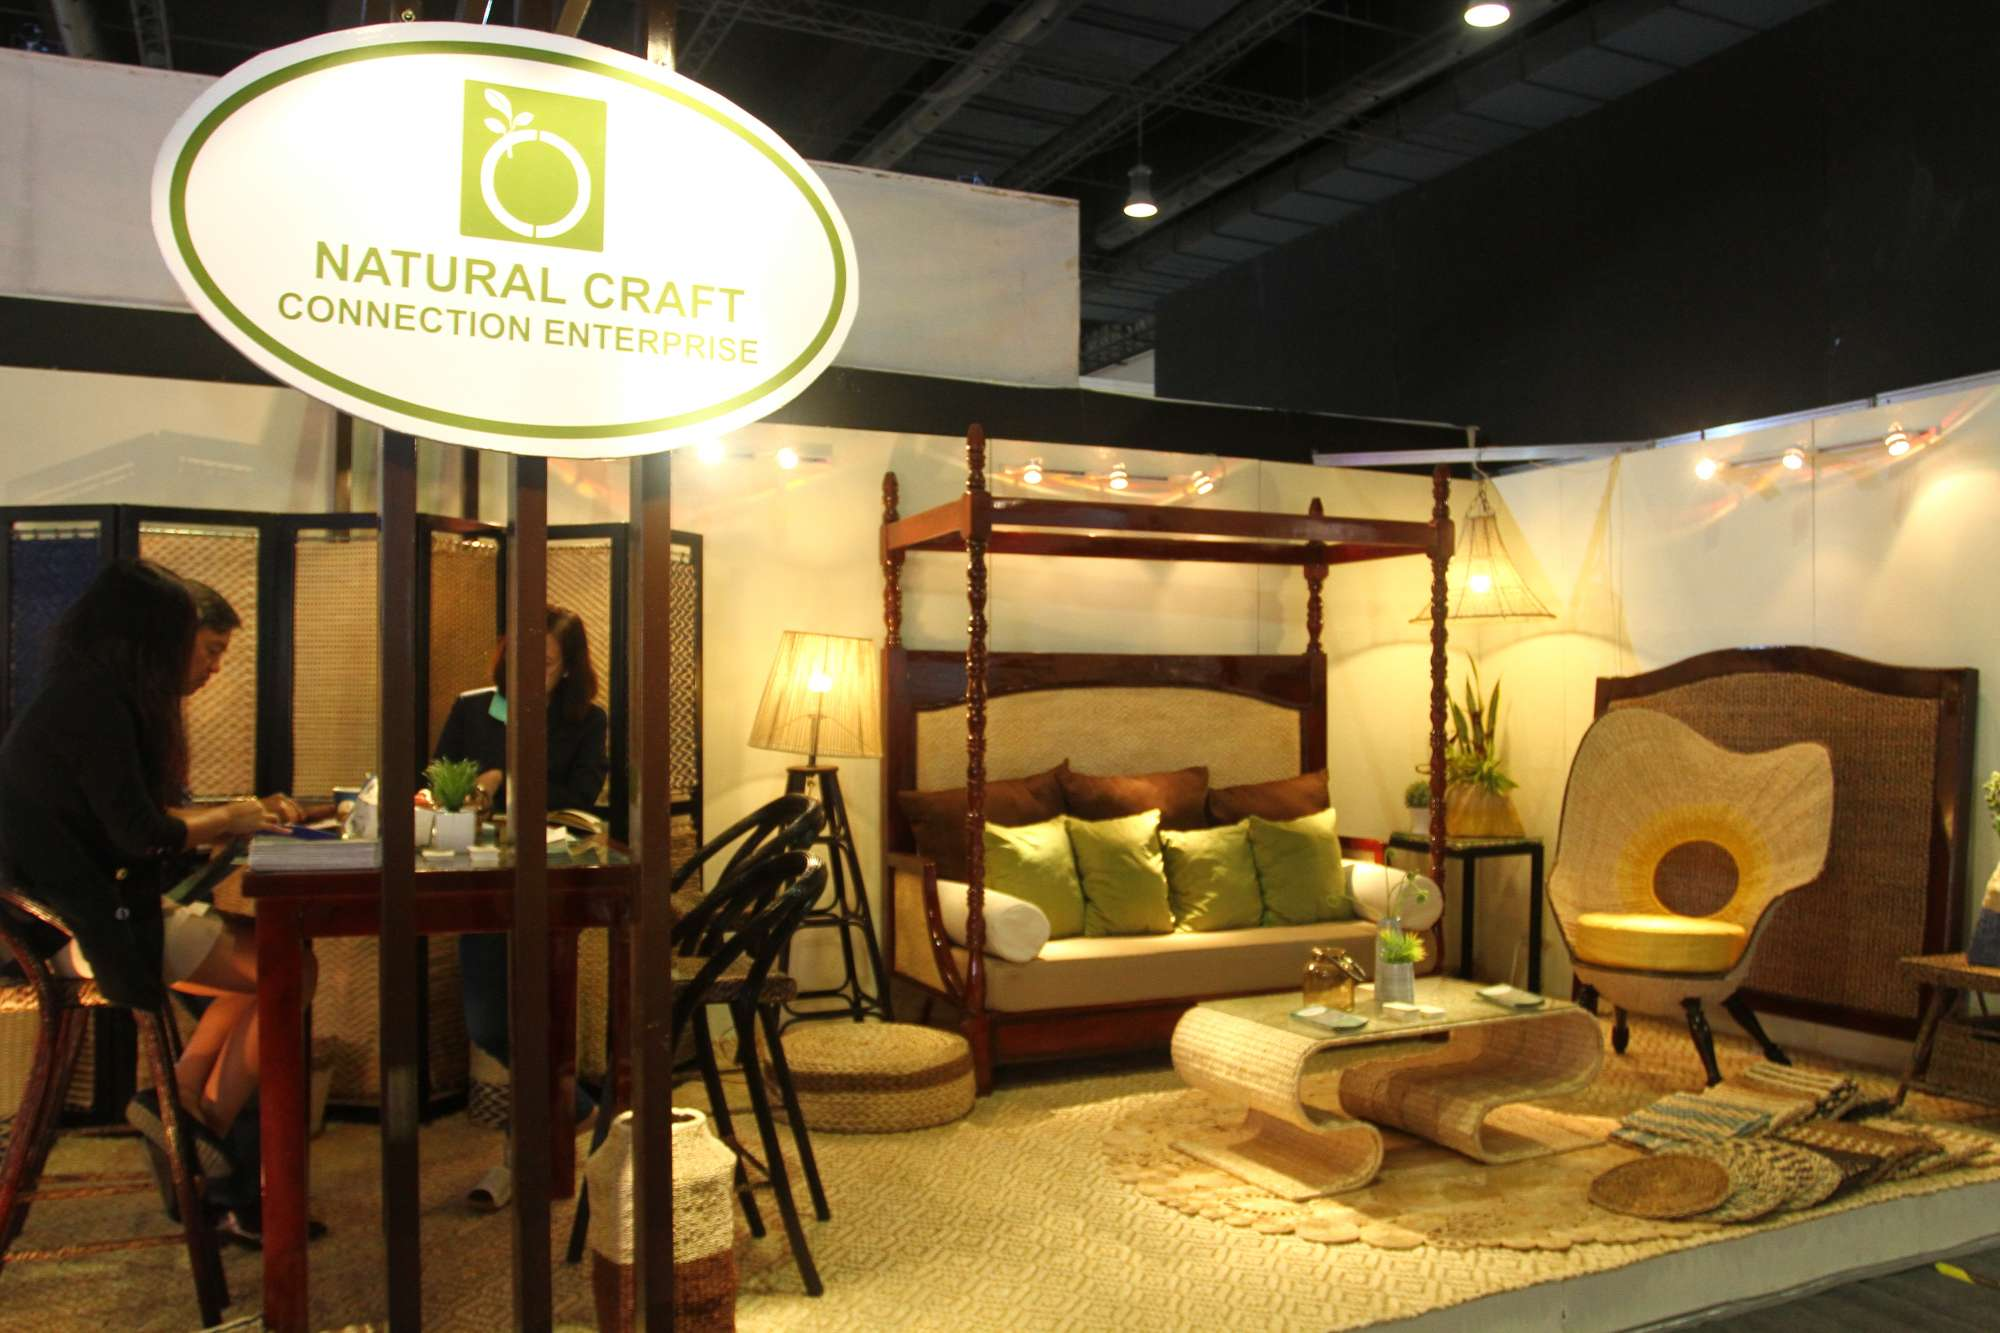 9th Hotel Suppliers Show brings 360˚ industry showcase [event